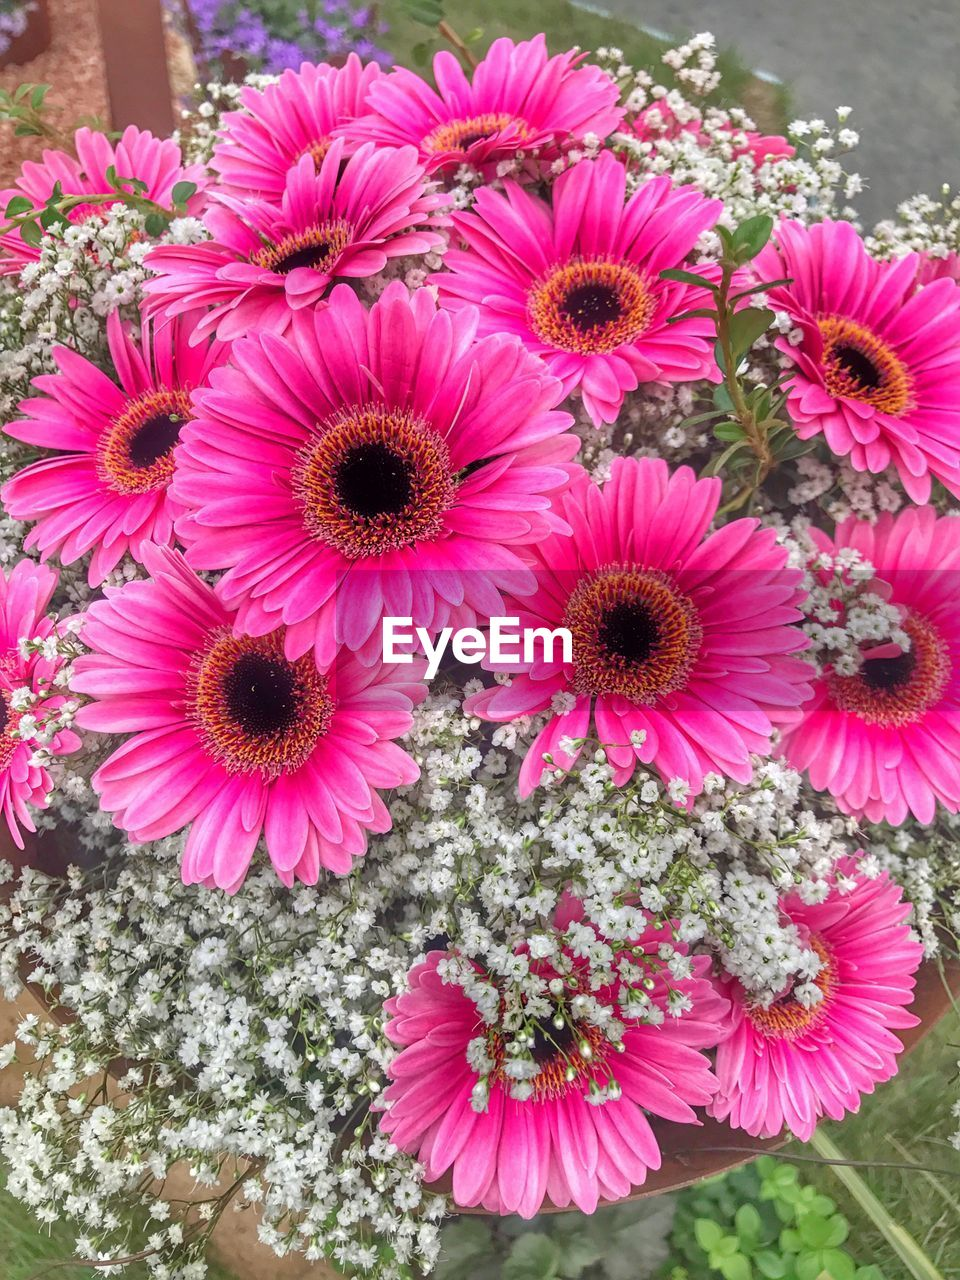 flower, petal, nature, growth, fragility, beauty in nature, freshness, flower head, pink color, no people, plant, blooming, outdoors, close-up, day